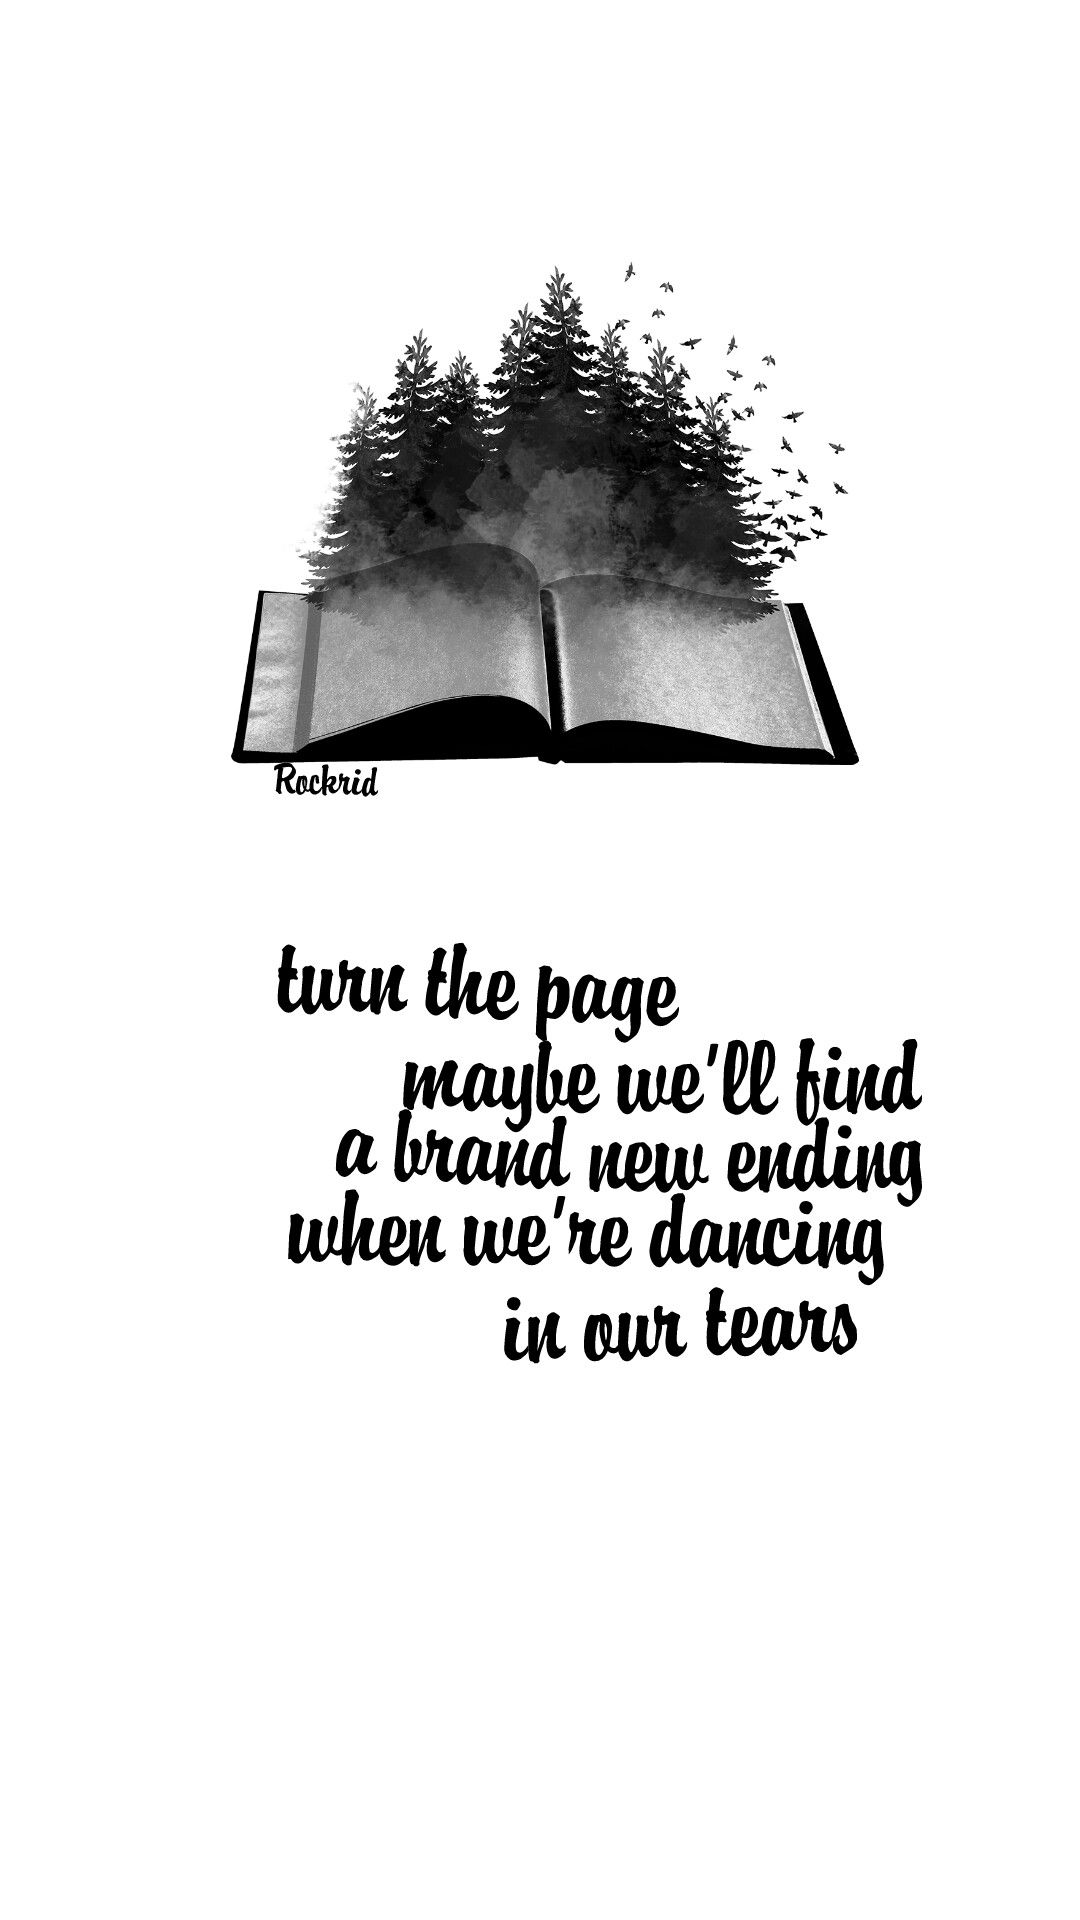 Turn The Page Maybe WeLl Find A Brand New Ending When WeRe